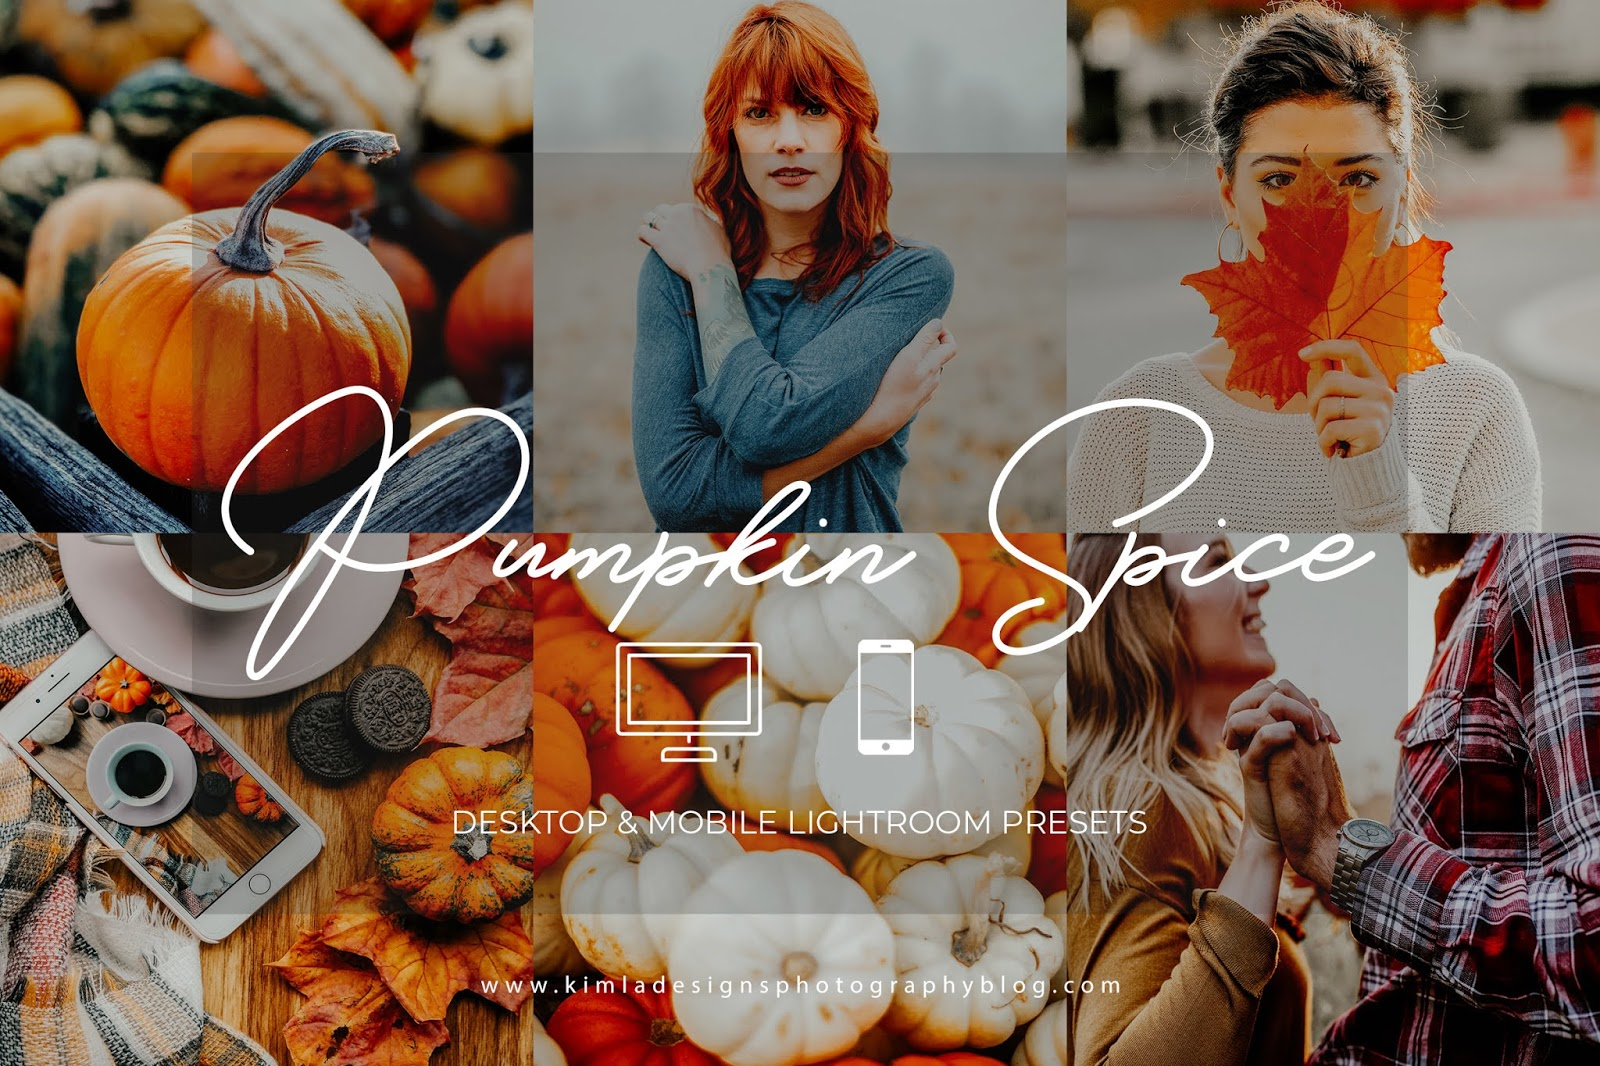 https://1.bp.blogspot.com/-SoxXknb4QCM/XZcBIAFhpsI/AAAAAAAAFNo/3kvT_9068kE-En__6ekct6CkXxbqPRXwACLcBGAsYHQ/s1600/Pumpkin-Spice-Fall-Lightroom-PResets-for-Bloggers-and-Photographers-Blog-Freebie.jpg